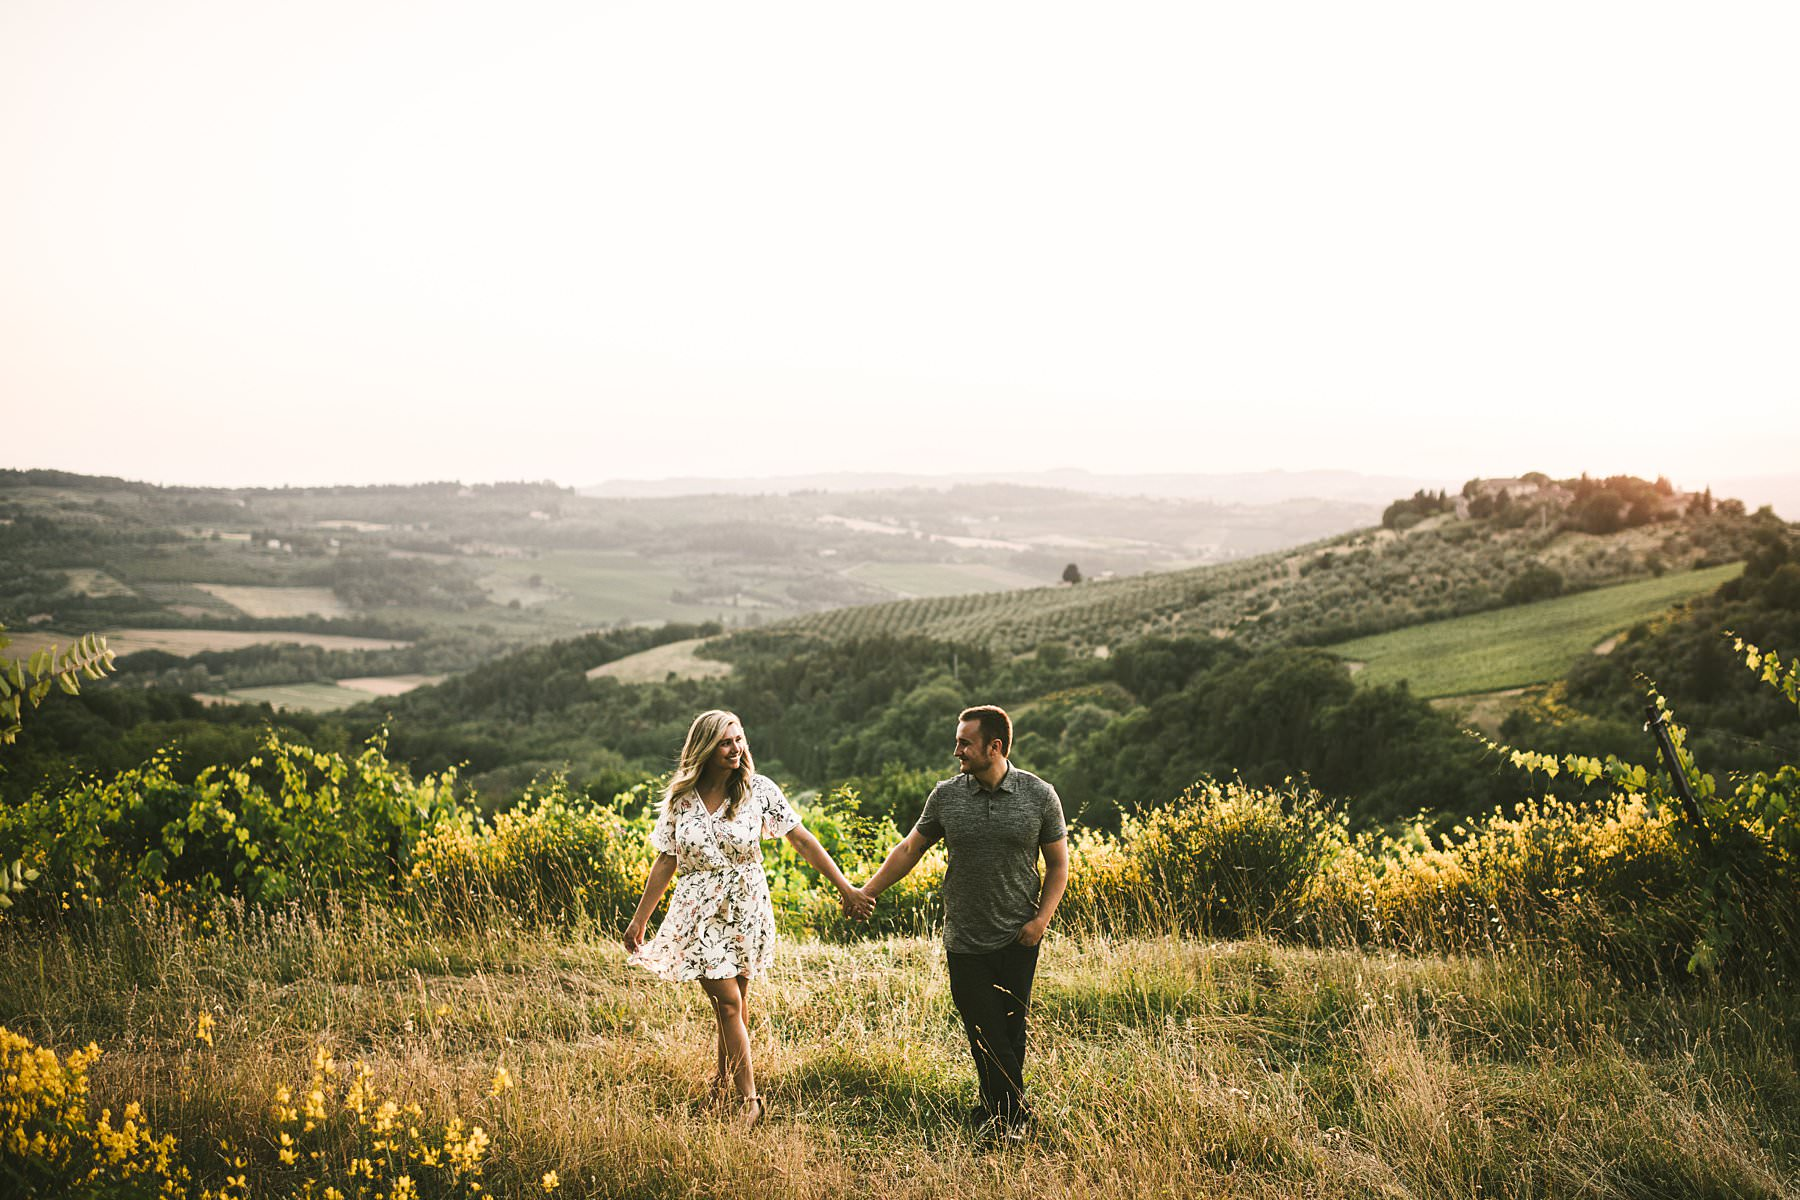 Engagement vacation photo session and discover the magic of Chianti, Tuscany. The countryside is a sequence of green and gold rolling hills, covered in vineyards and olive groves. A landscape that feels like a fairytale will embrace you while you express your love to each other. Just like Andrea and Aaron who danced, laughed, kissed, hugged and enjoyed every minute of the shooting in such a magical location, caressed by the warm sunset light.